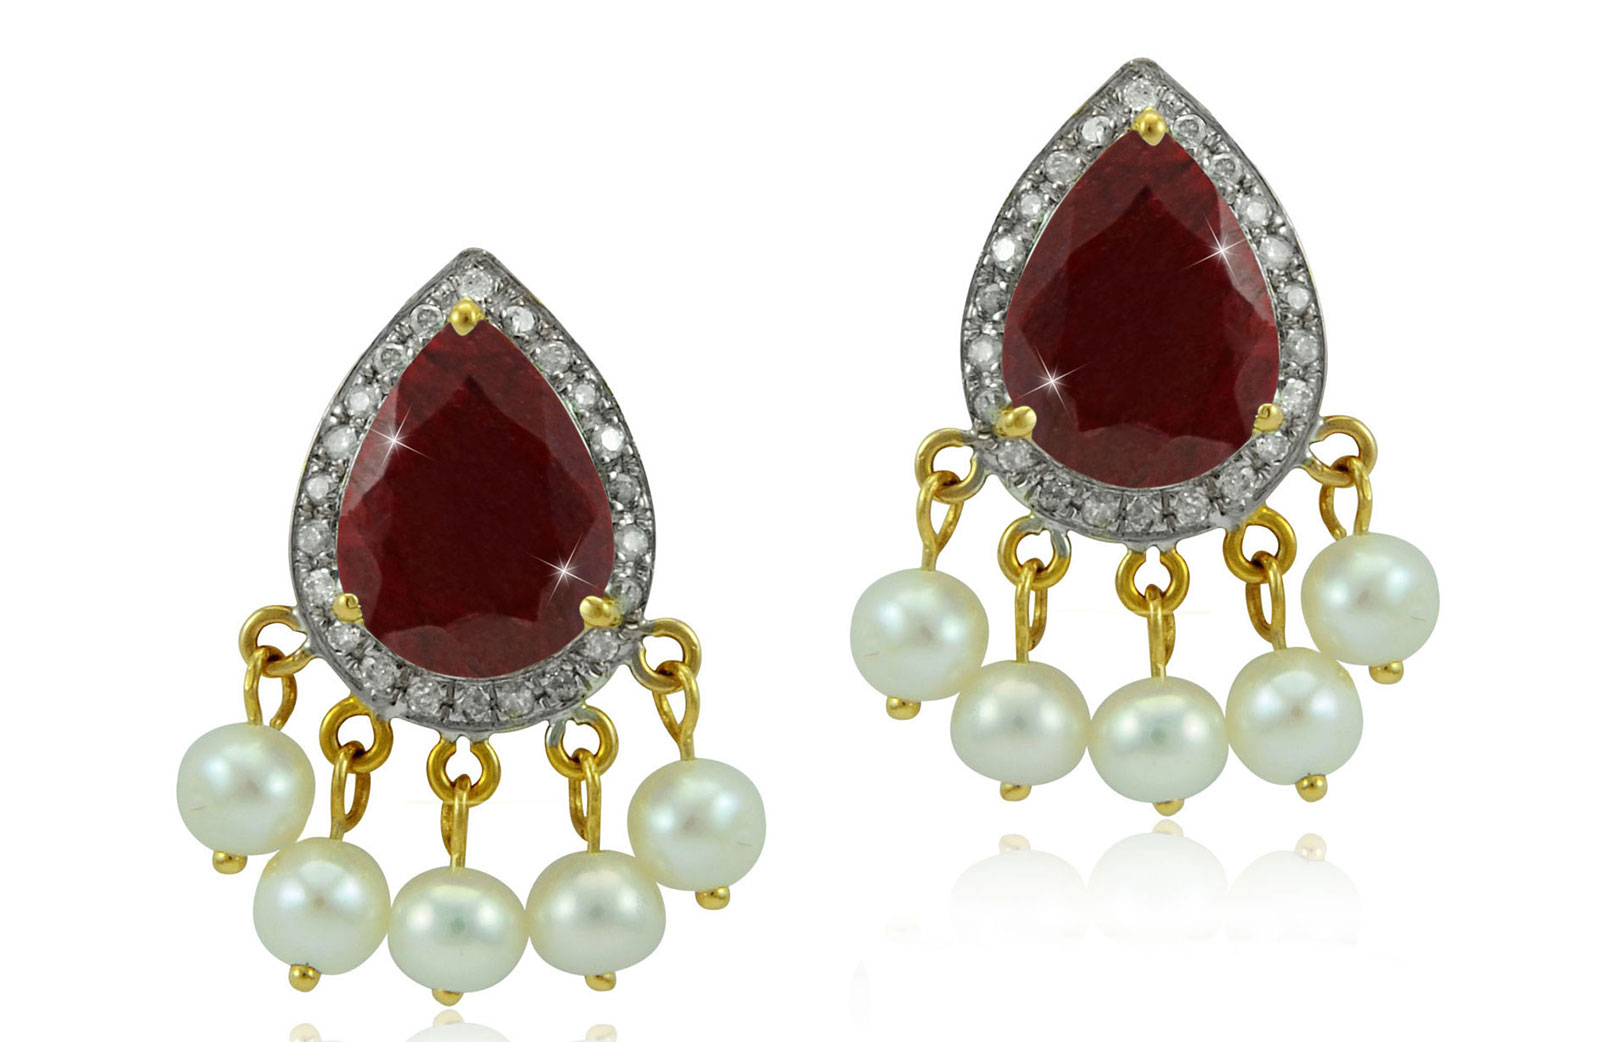 Vera Perla 18K Gold 0.24ct Diamonds, Royal Indian Ruby Earrings